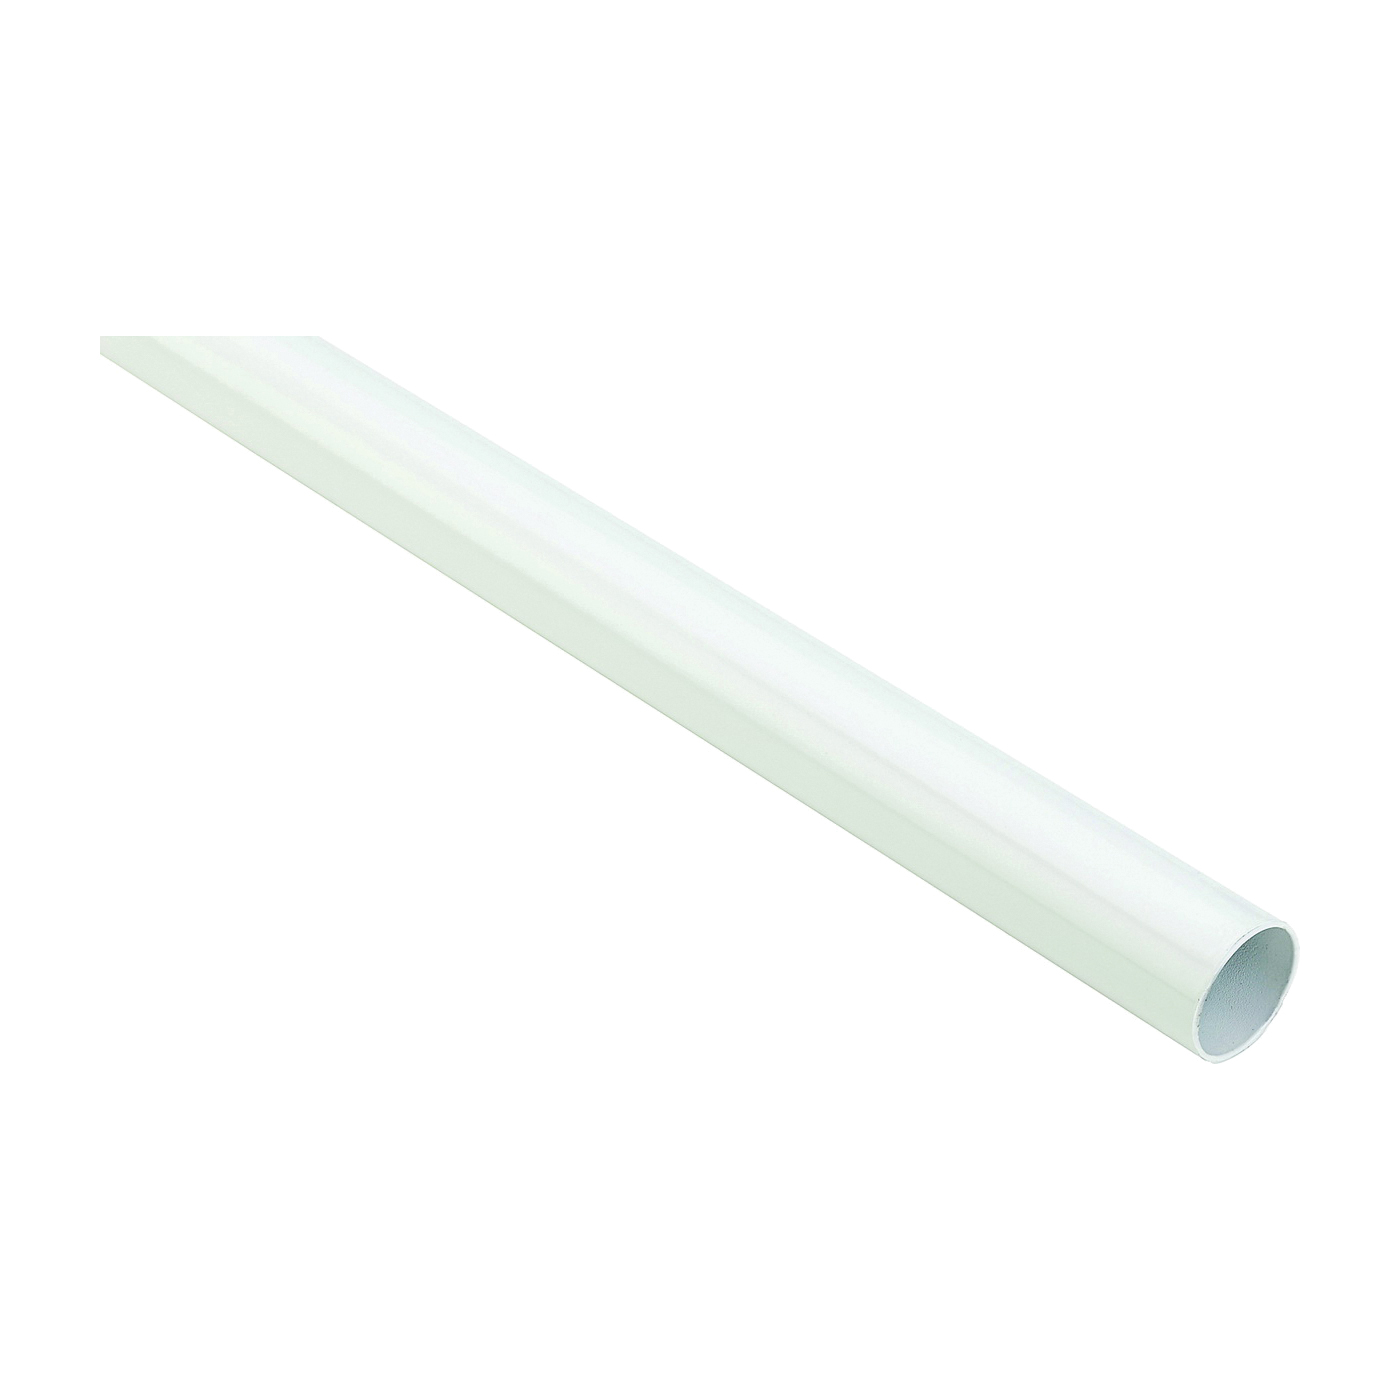 Picture of National Hardware BB8603 Series S822-098 Closet Rod, 1.32 in Dia, 6 ft L, Steel, White